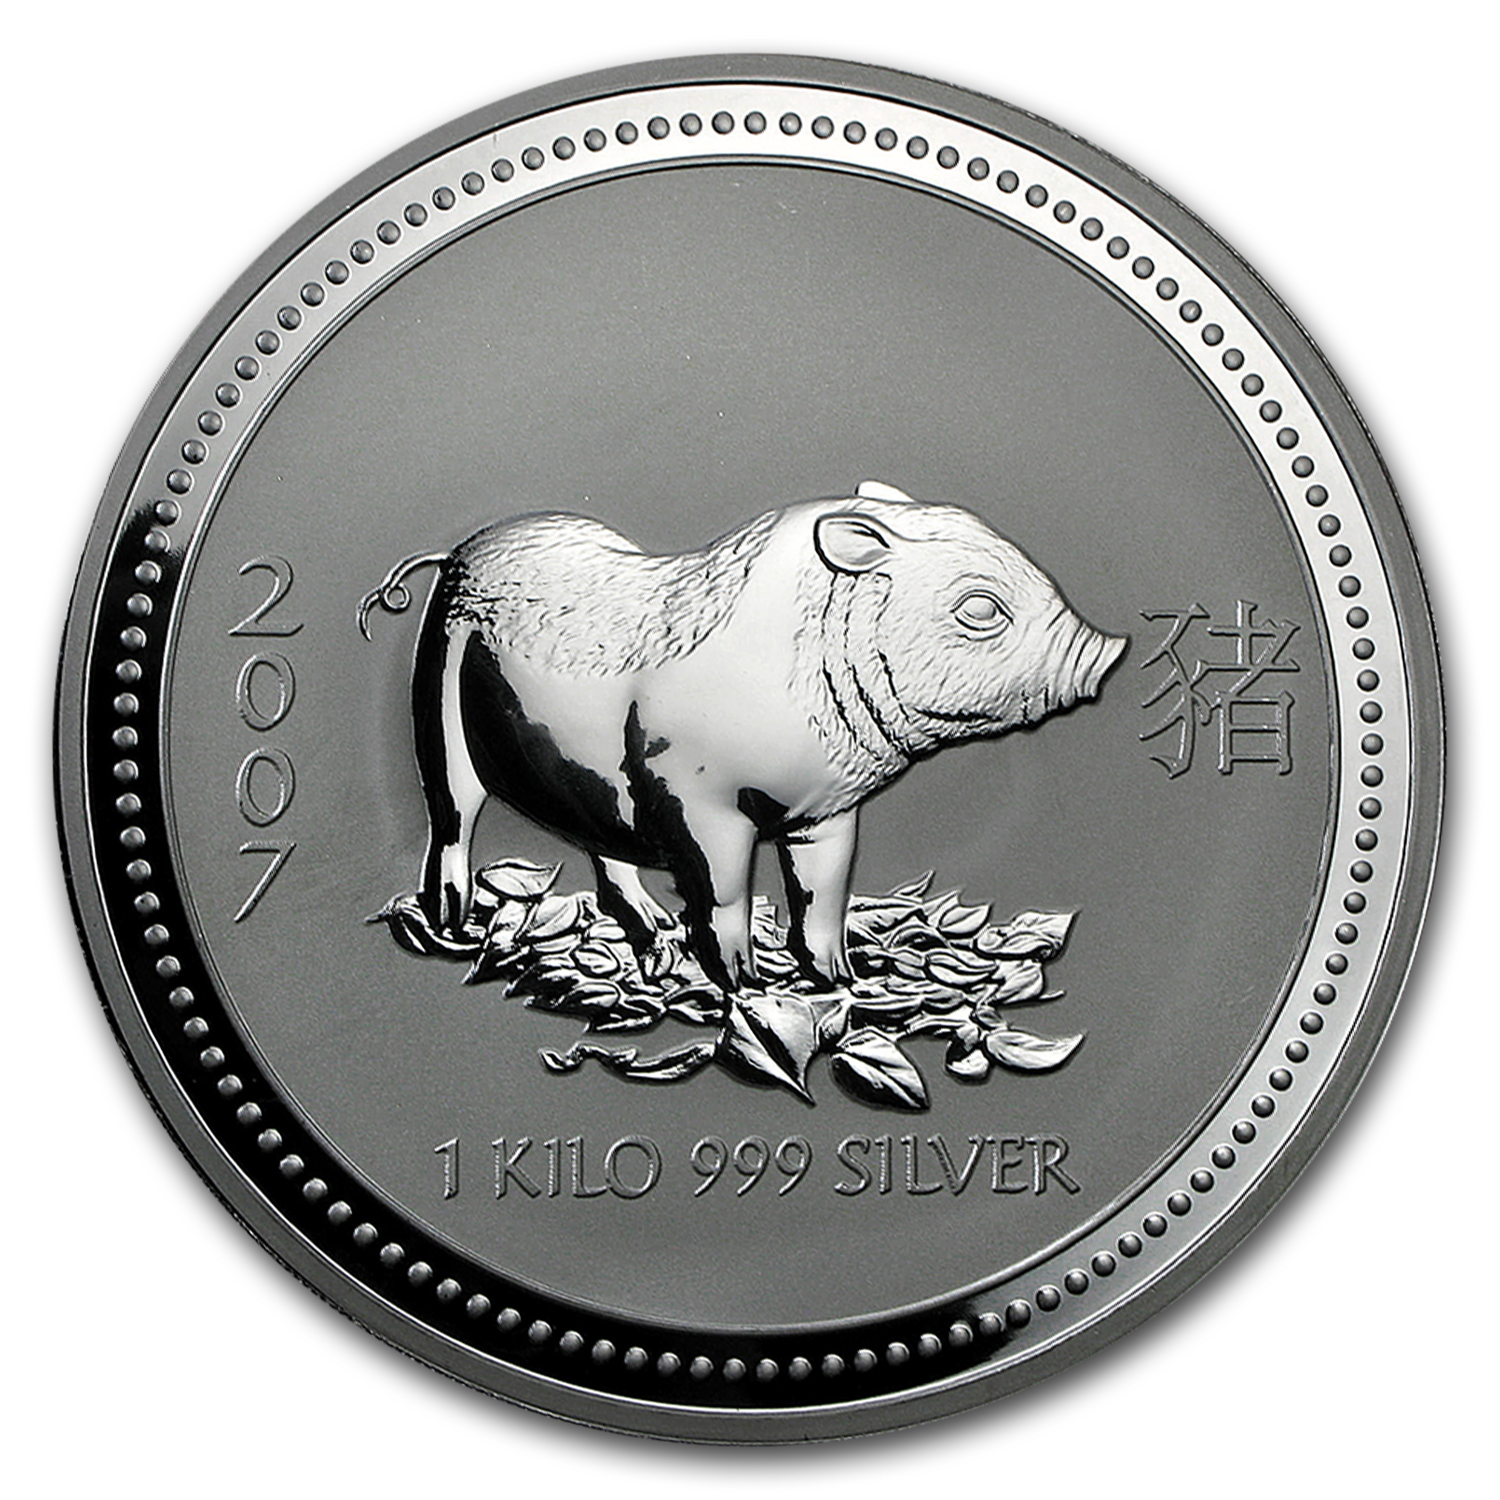 2007 Australia 1 kilo Silver Year of the Pig BU